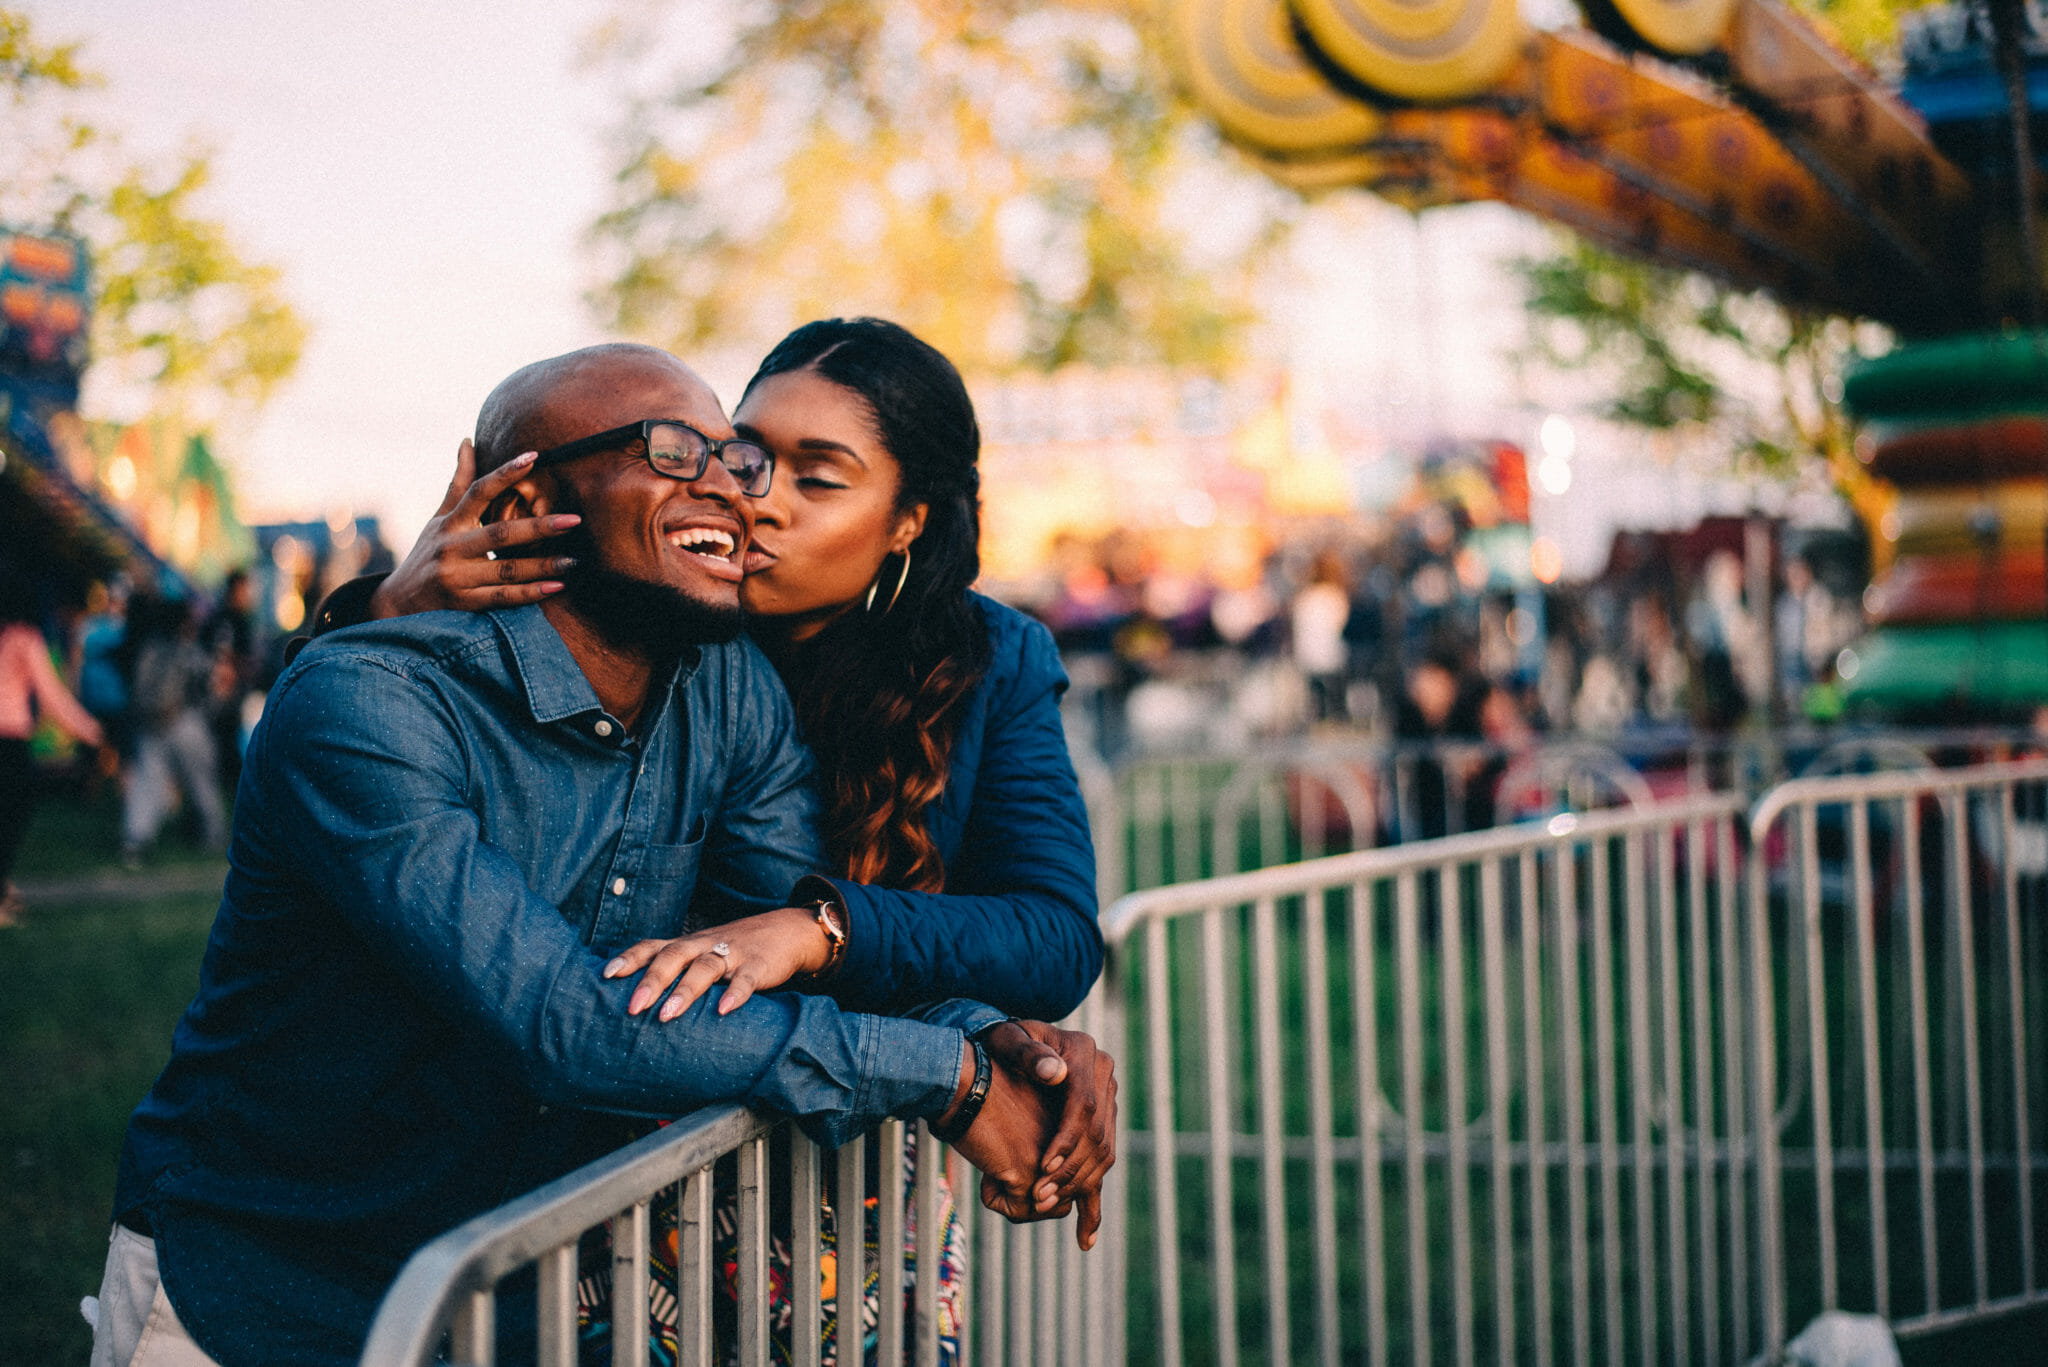 engaged couple kisses at carnival